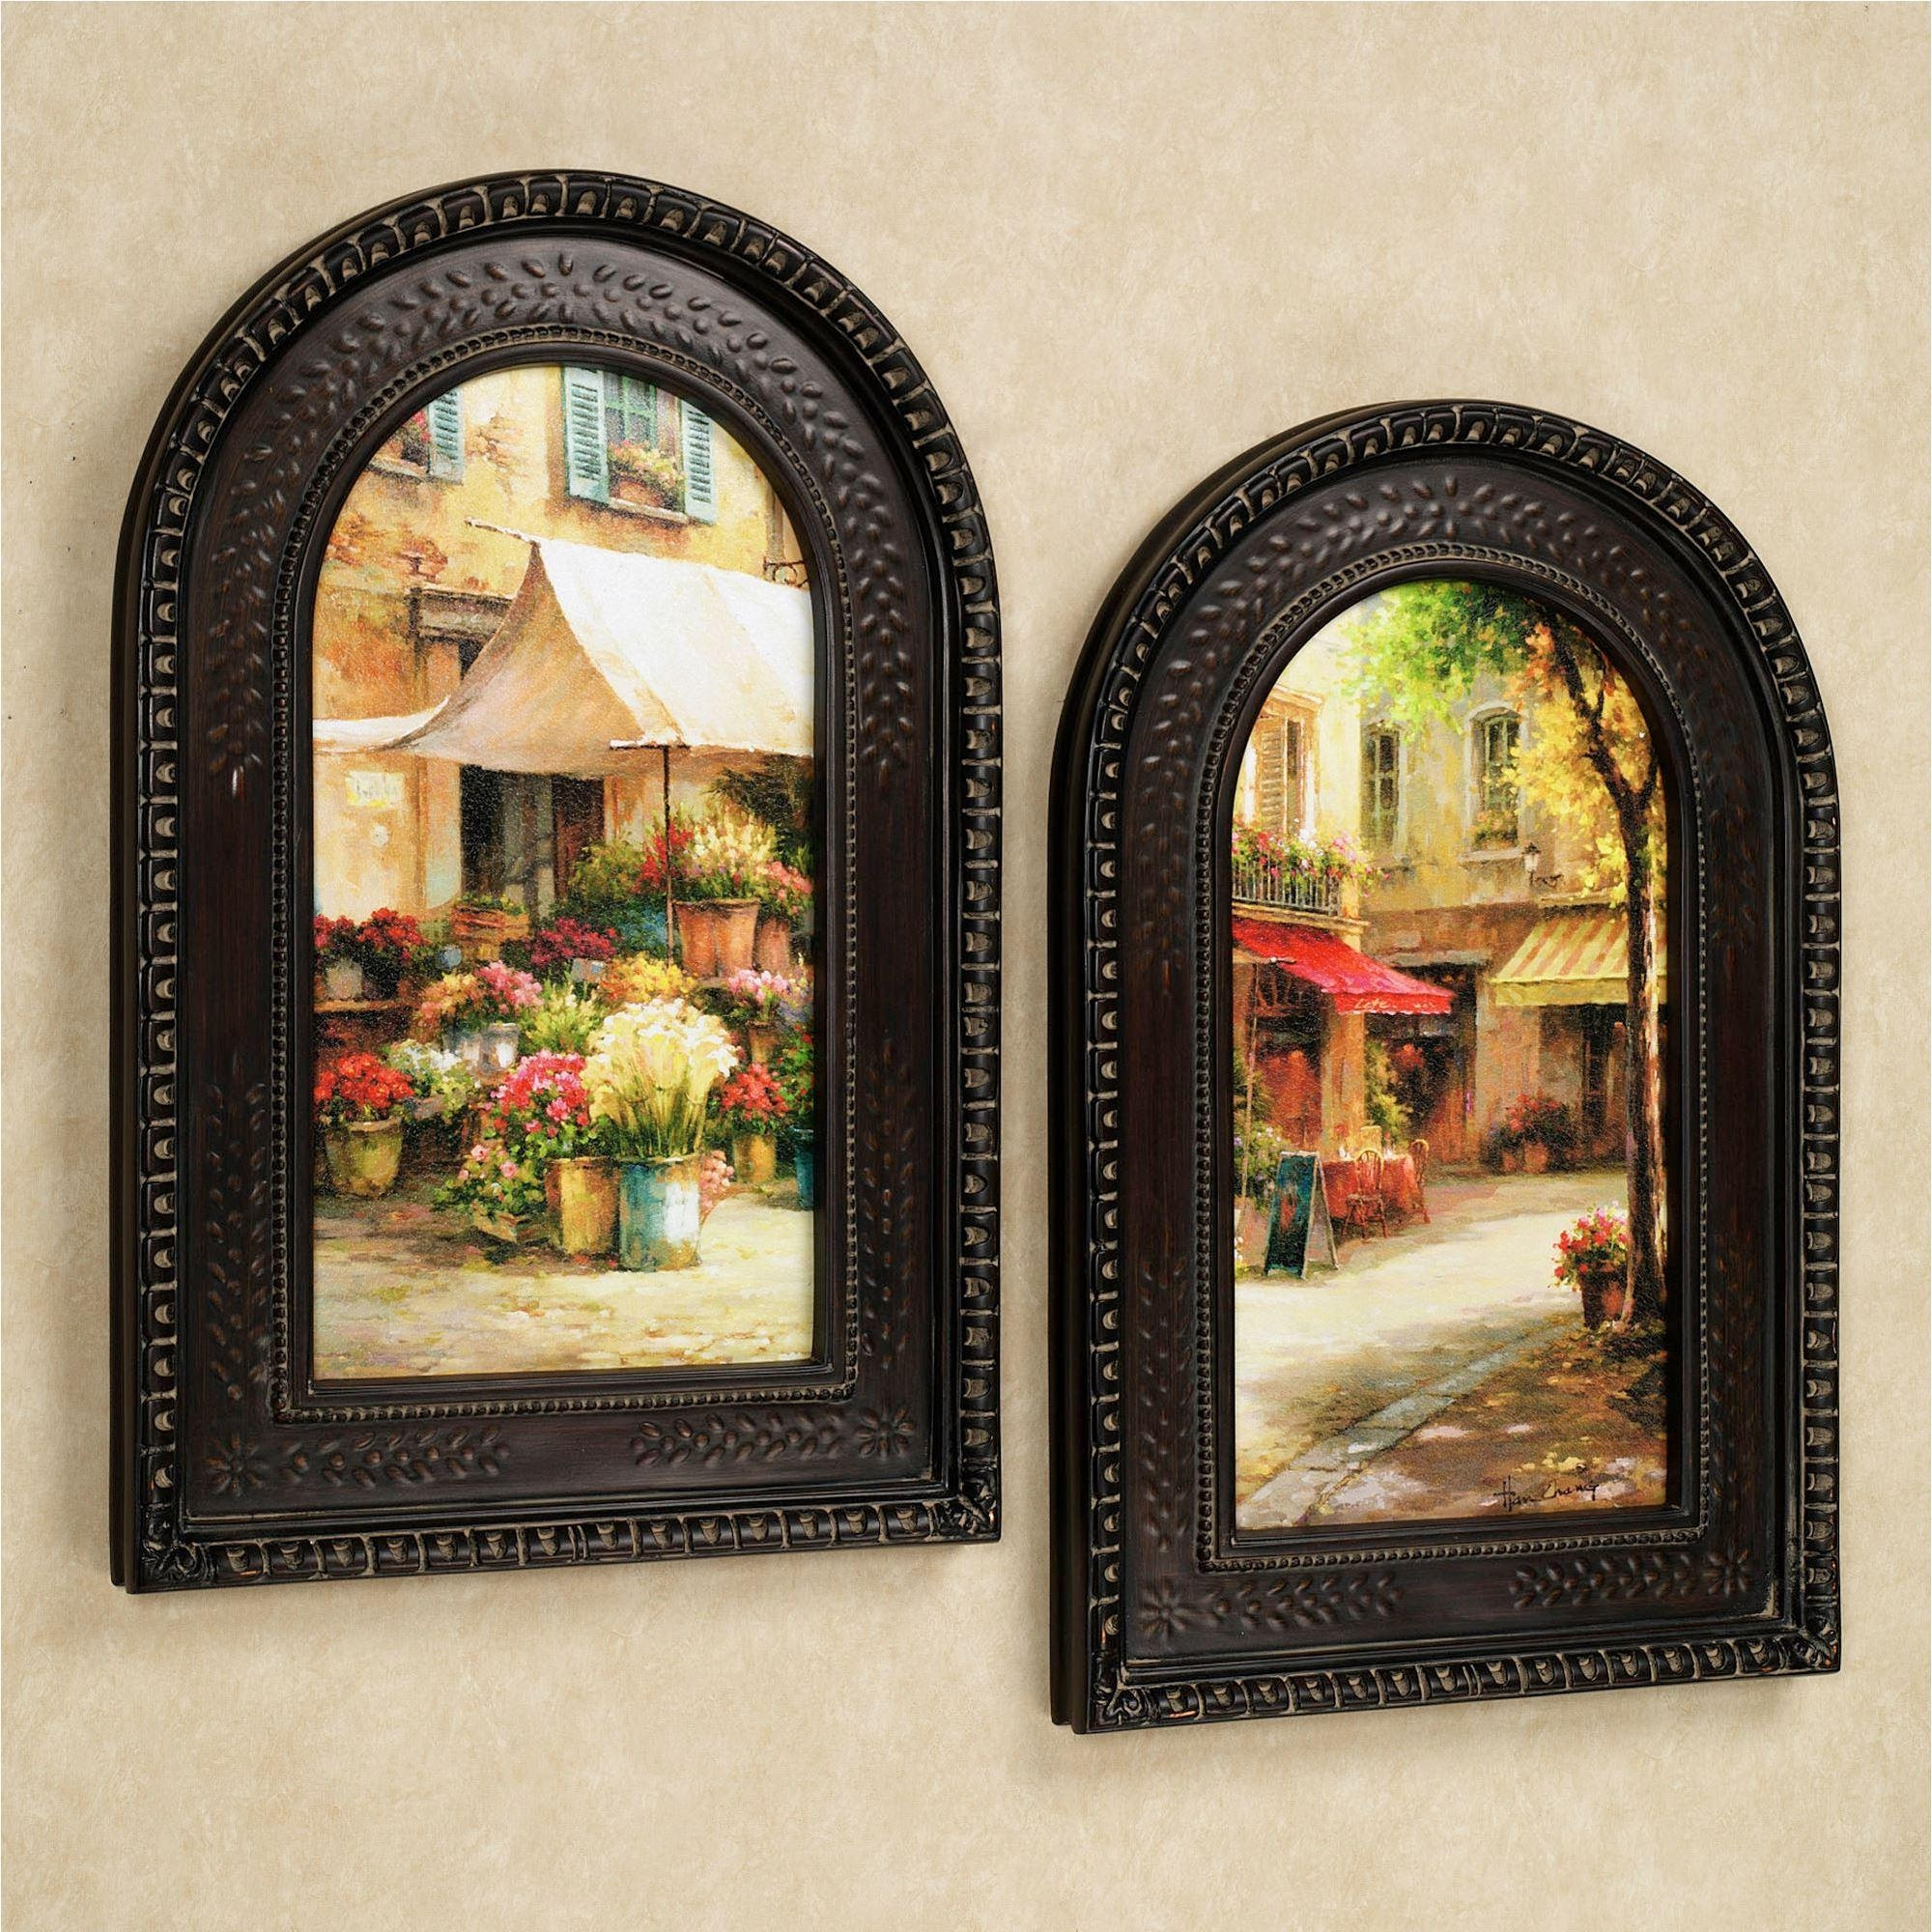 The Flower Market Arched Framed Wall Art Set Intended For Italian Overlook Framed Wall Art Sets (View 3 of 20)